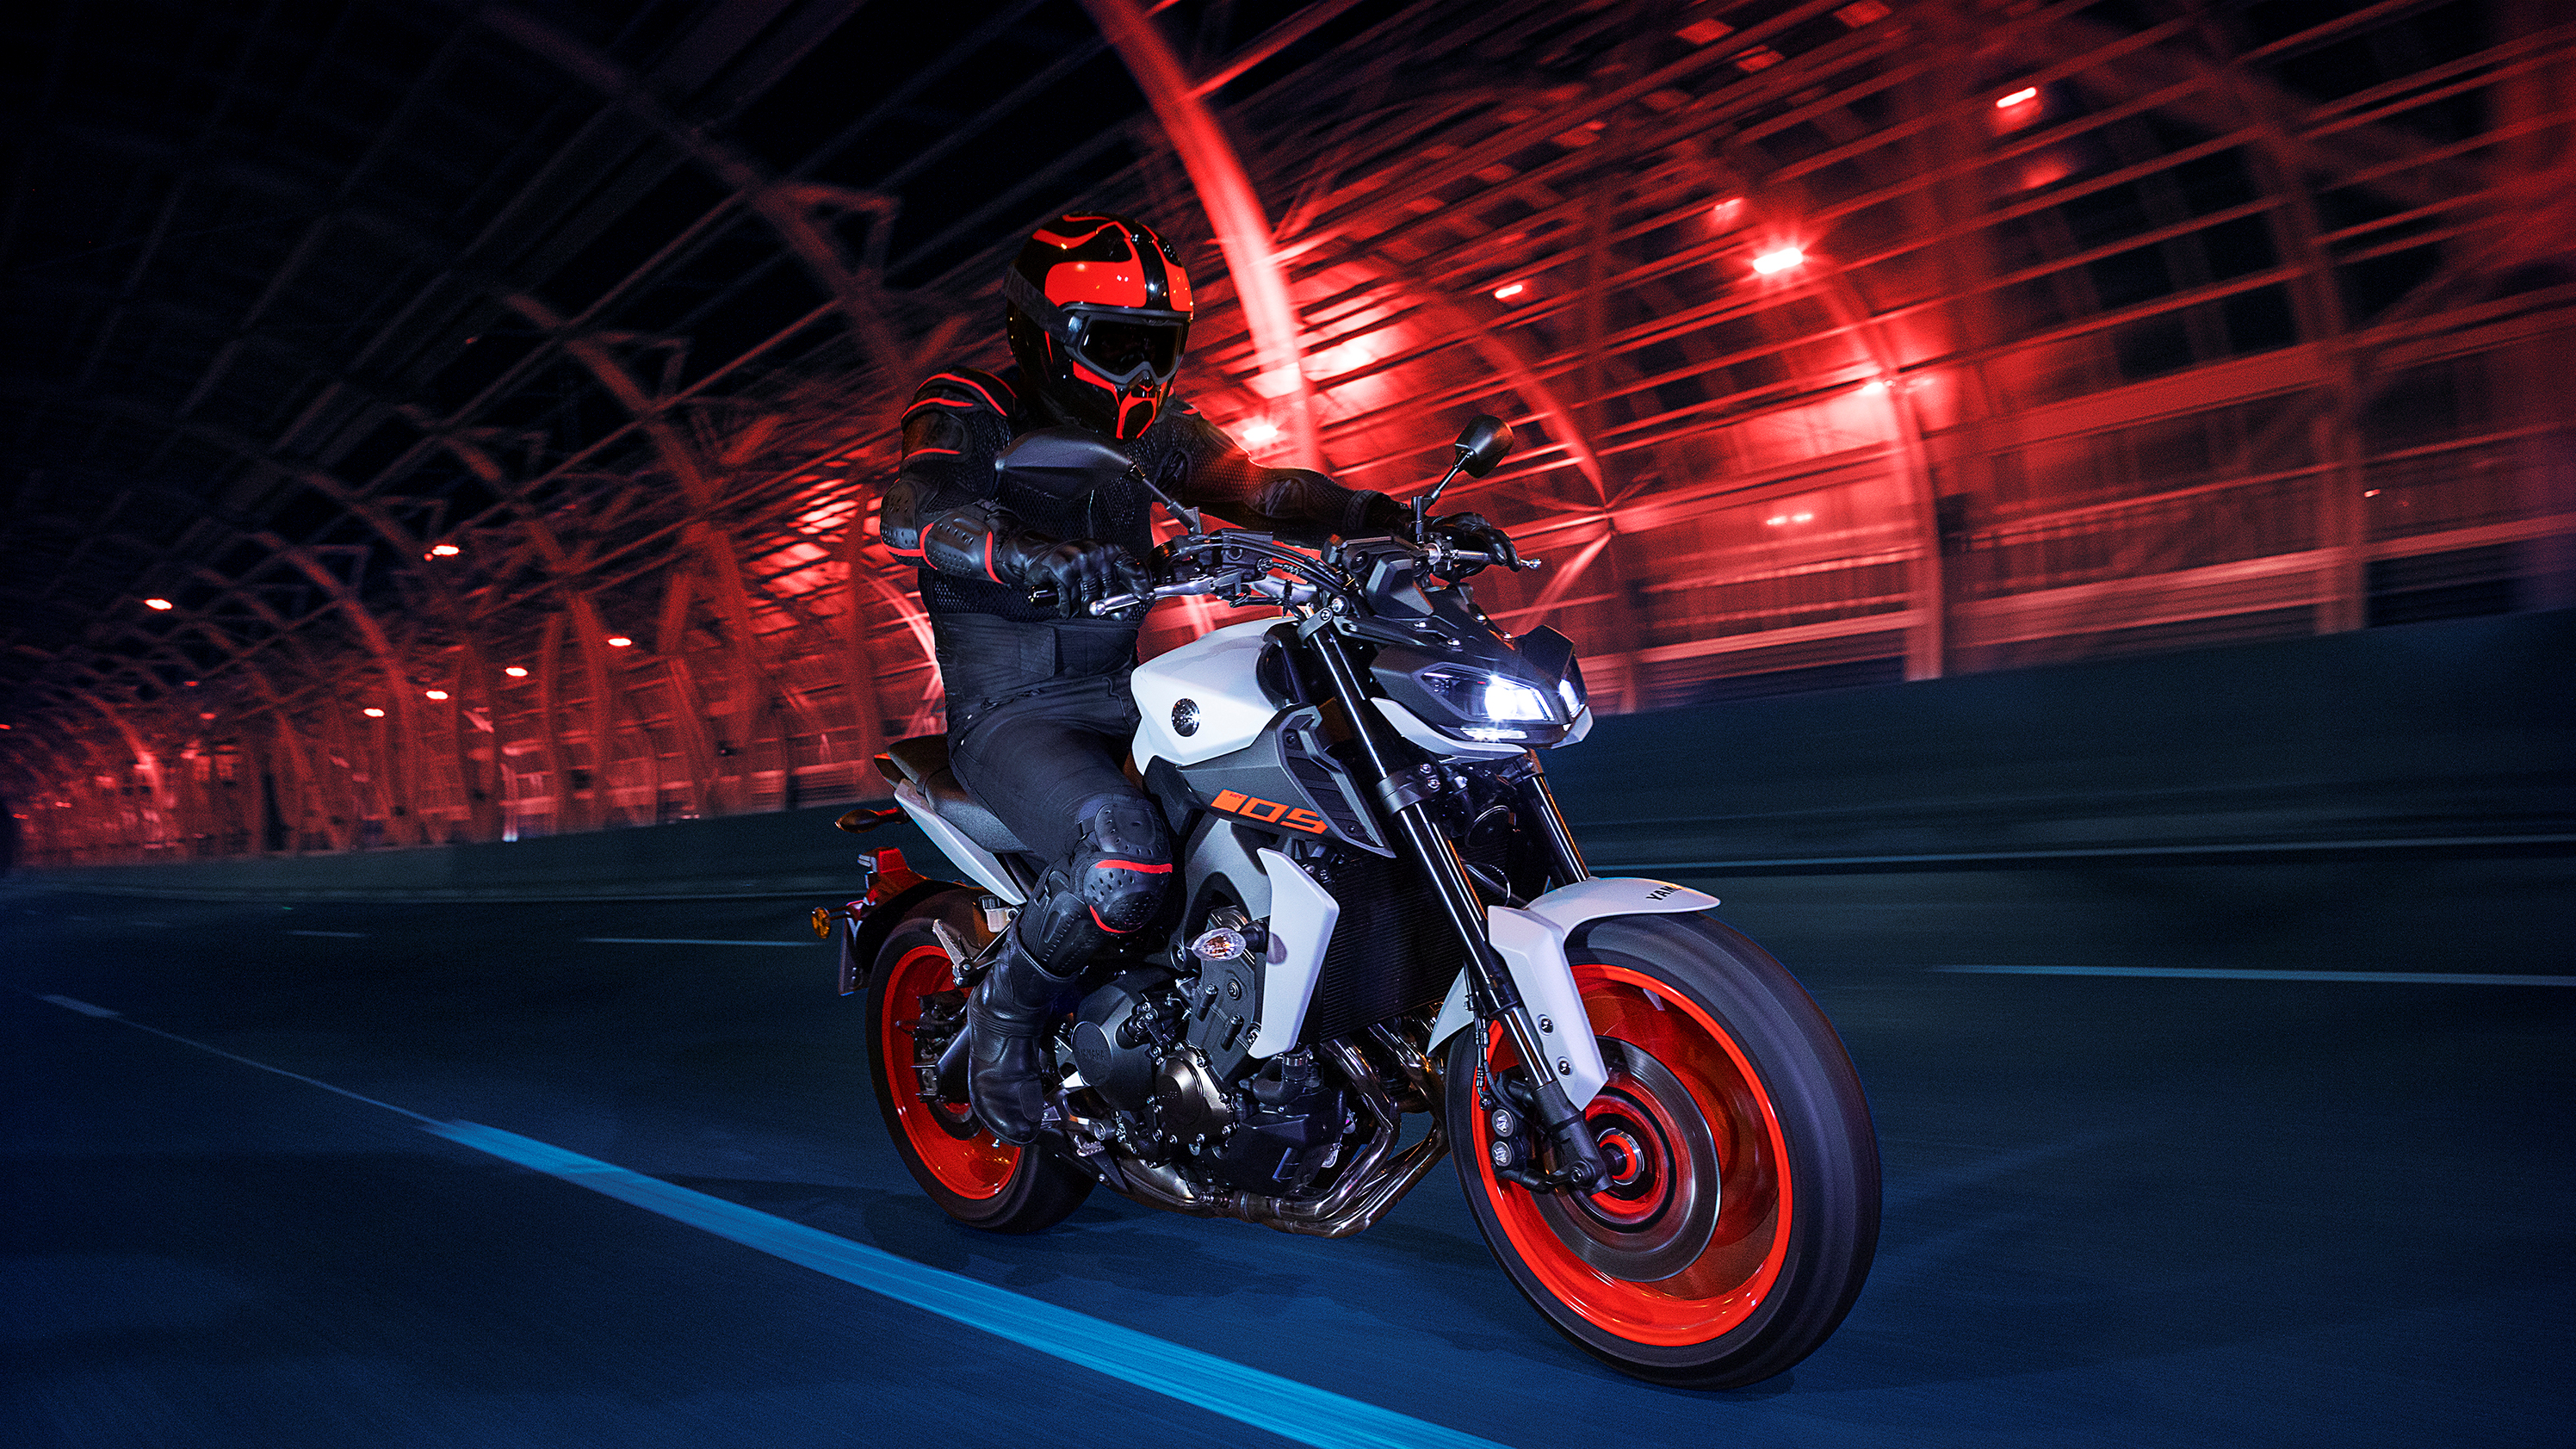 2018 - 2019 Yamaha MT-09 | Top Speed